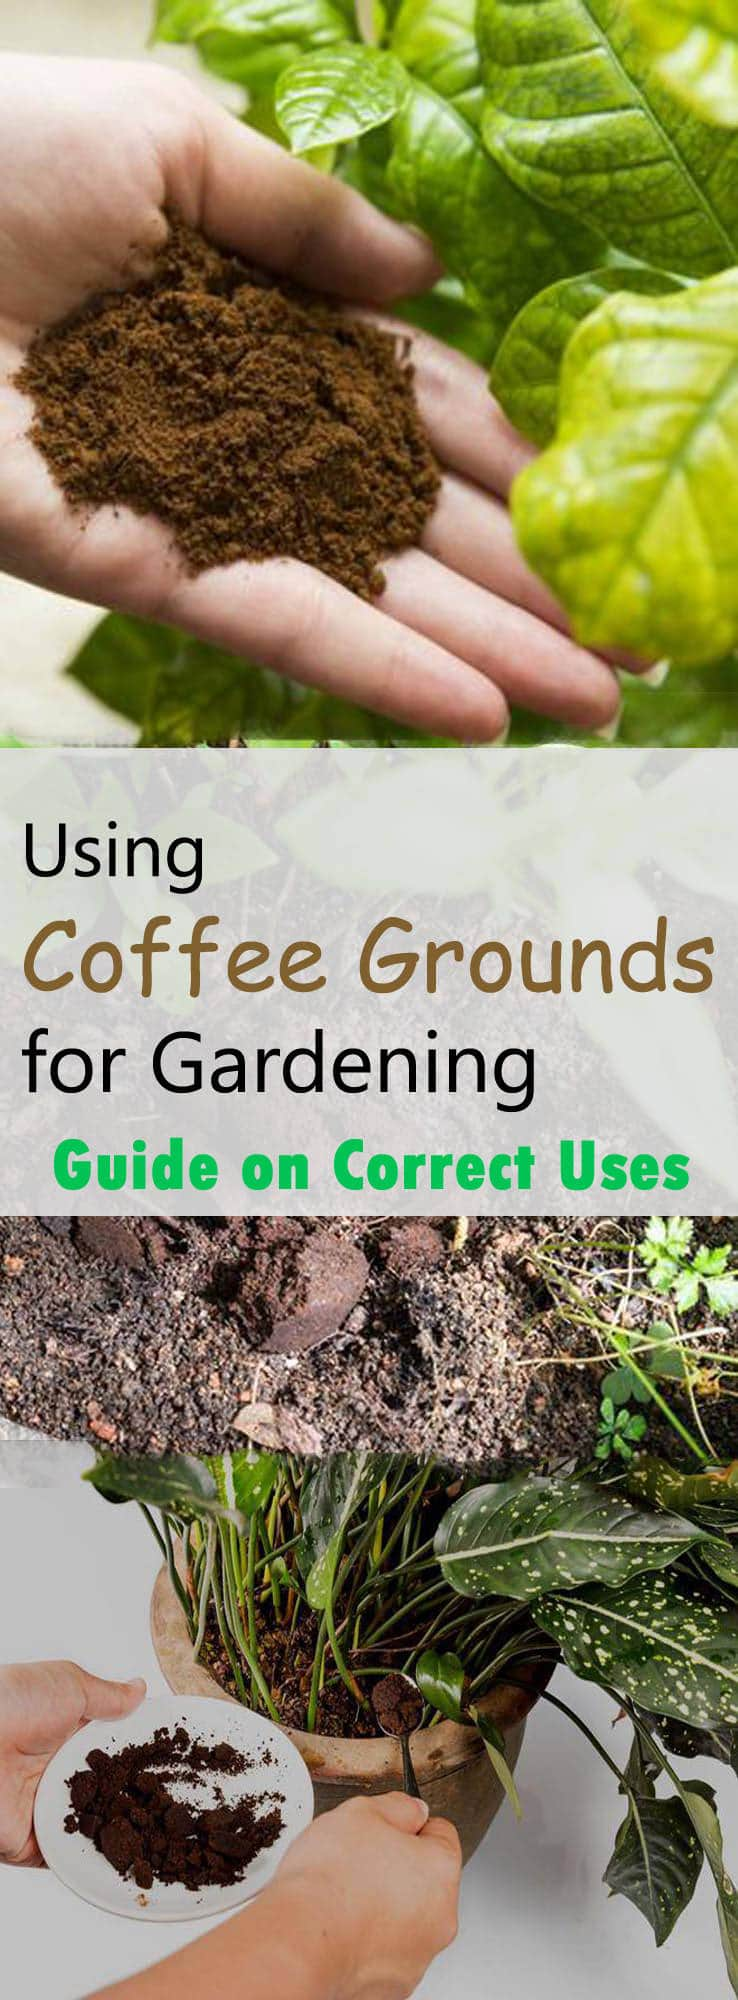 Using Coffee Grounds For Gardening Really Helps If Yes What Are The Correct Ways